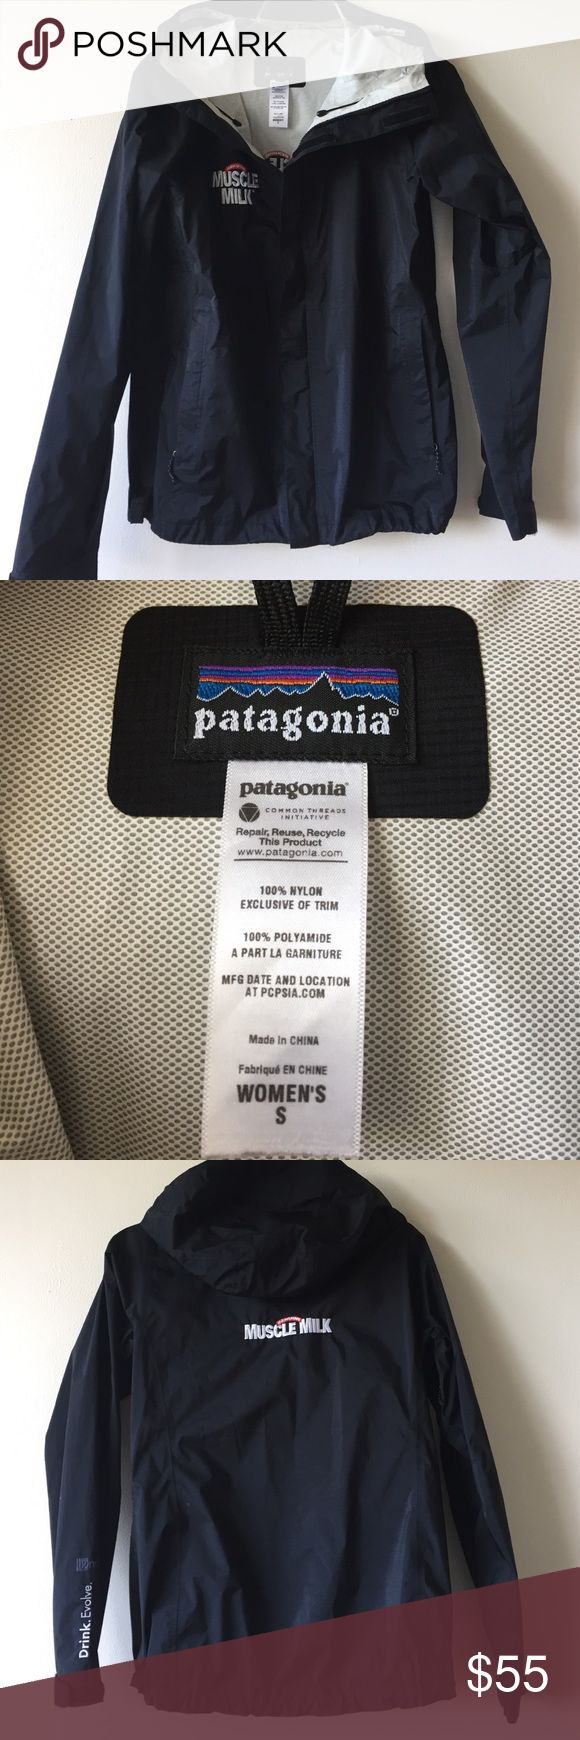 Patagonia Parka with Muscle Milk™ Logo This was a promotional shell jacket by Patagonia for Muscle Milk®. Lightweight jacket is in nearly new condition. Embroidered logo on right breast and on back. Two front zip pockets. Velcro and zip front closure. Interior slip pocket for cell phone. Elastic waist tightener. 🚫No trades🚫 Patagonia Jackets & Coats Utility Jackets